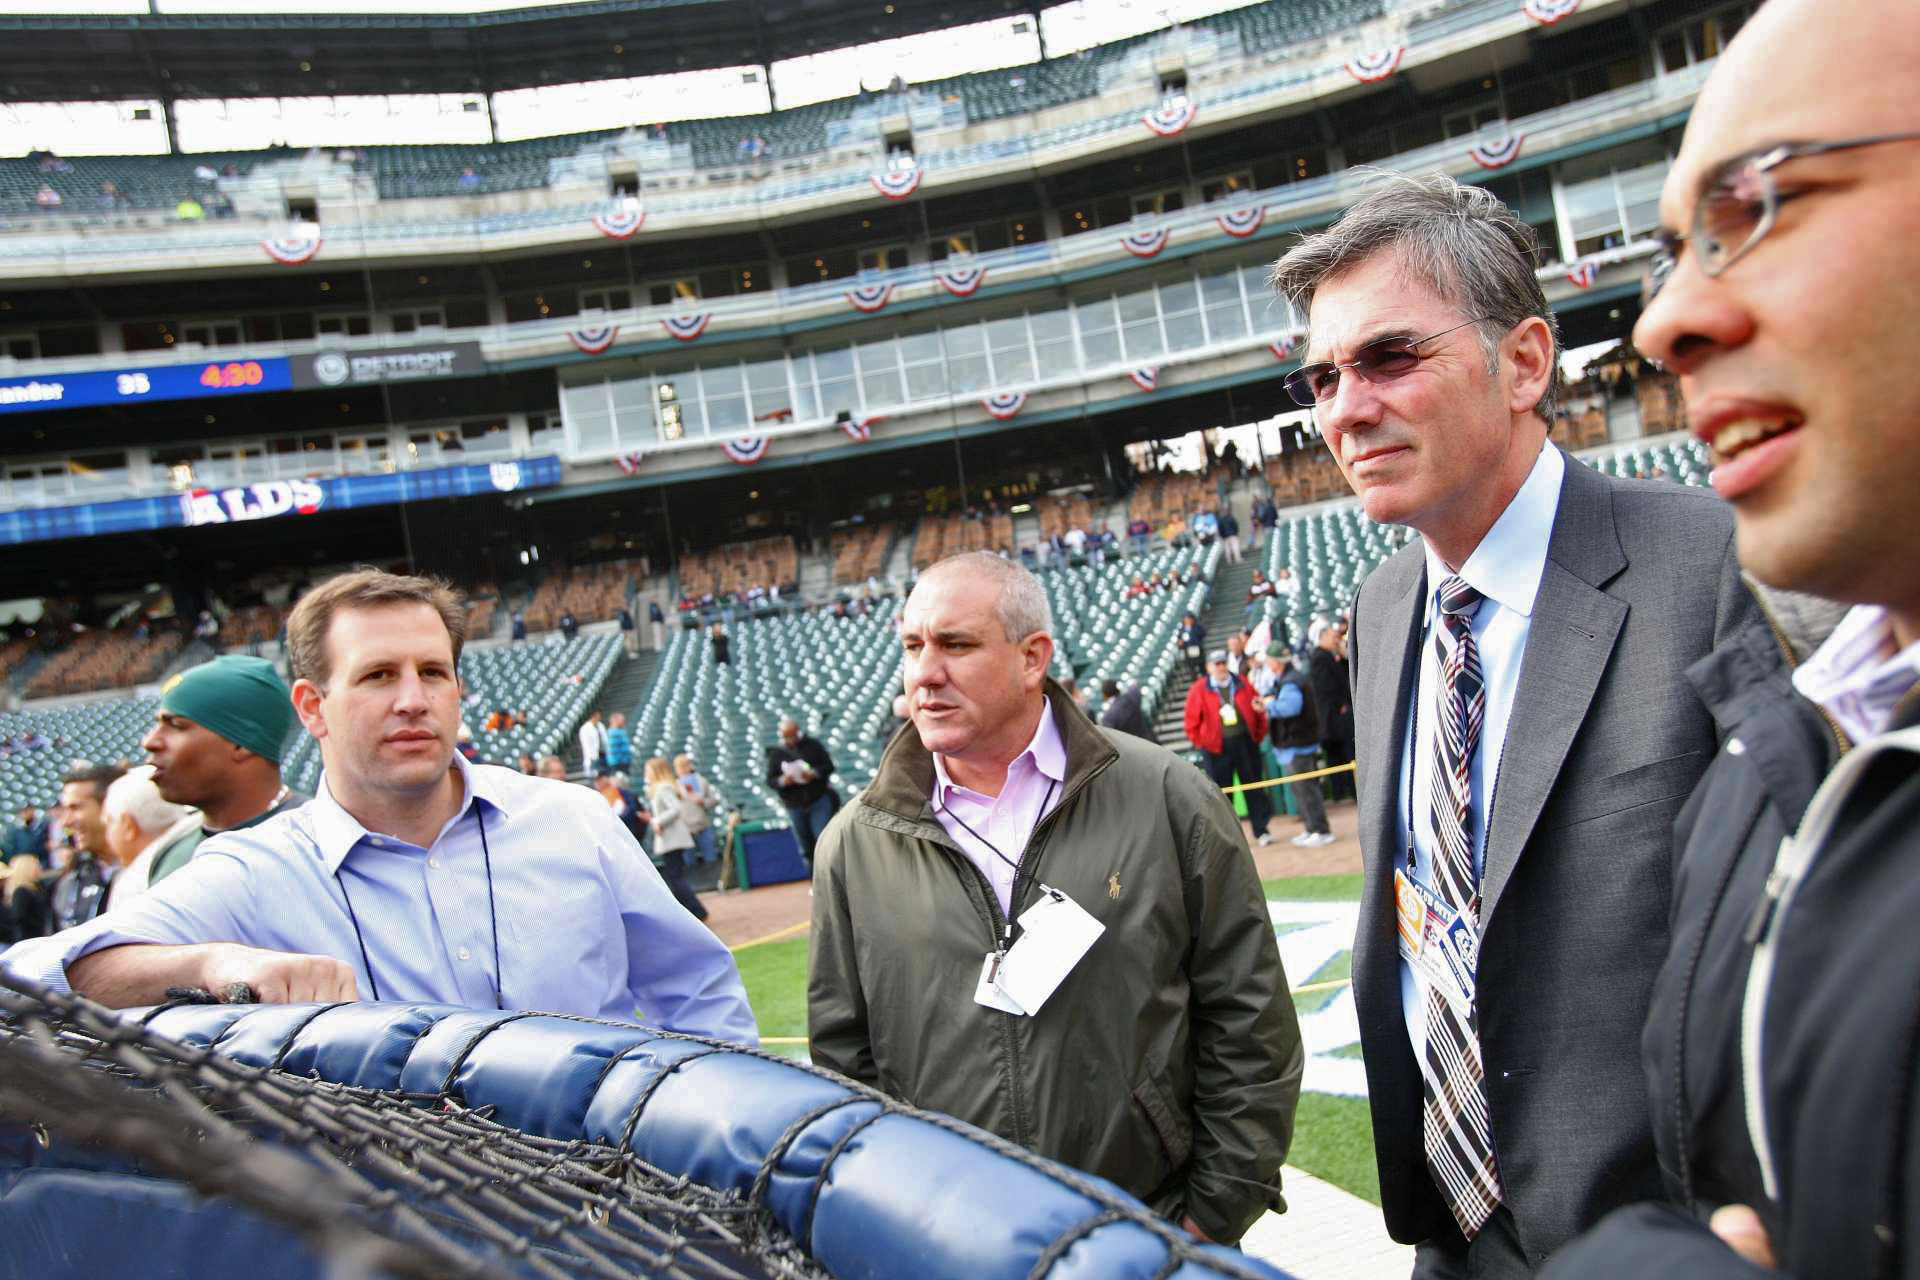 Farhan Zaidi, right, with Oakland A's assistant general manager David Forst, from left, director of scouting director Dan Feinstein and general manager Billy Beane at Detroit's Comerica Park in 2012. Zaidi was an essential part of the Athletics' executive team.